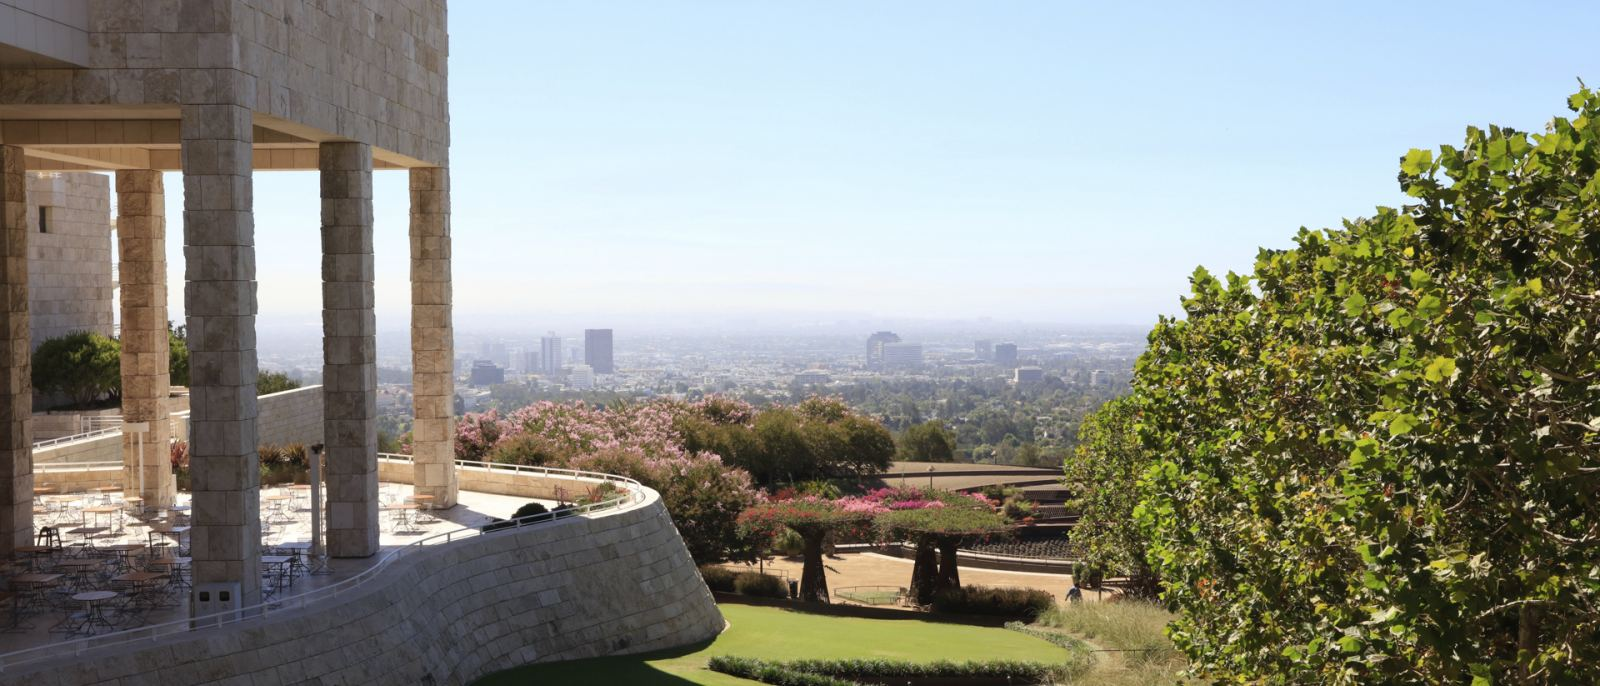 Getty Center and Garden   |  Photo: Yuri Hasegawa